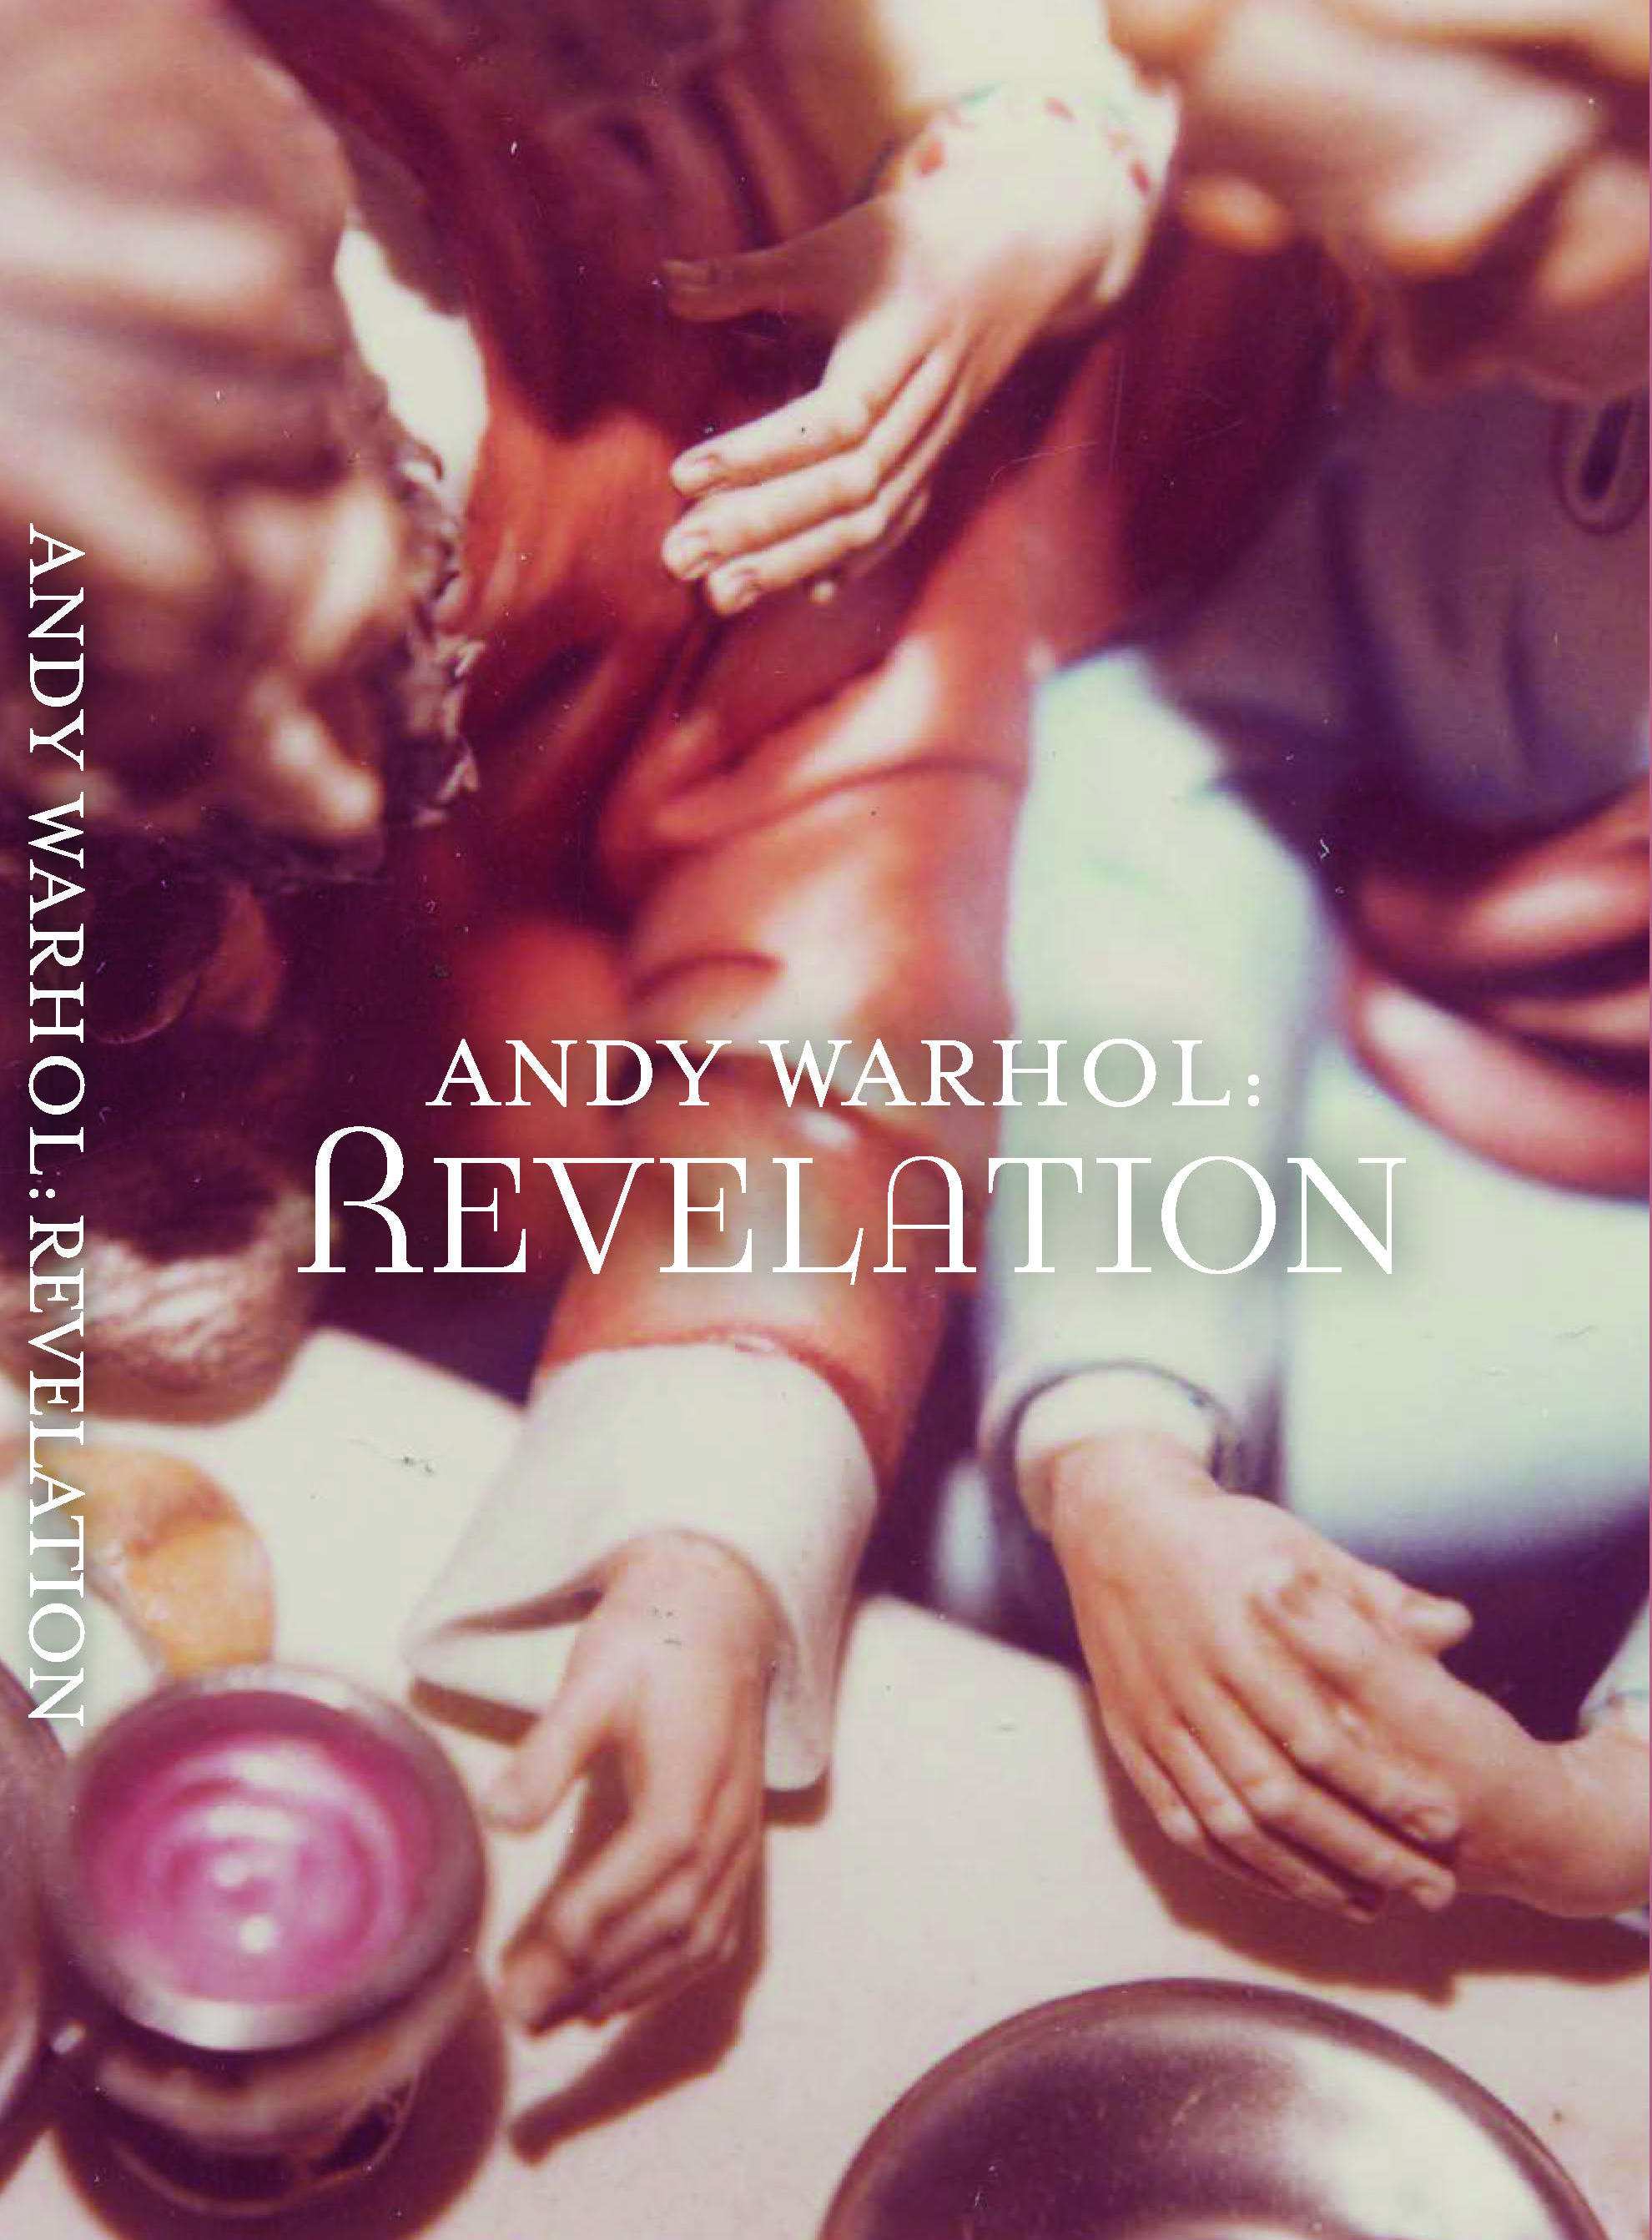 Andy Warhol: Revelation - by Jose Diaz and Miranda Lash, exhibition catalogue. Published by The Andy Warhol Museum, 2019.